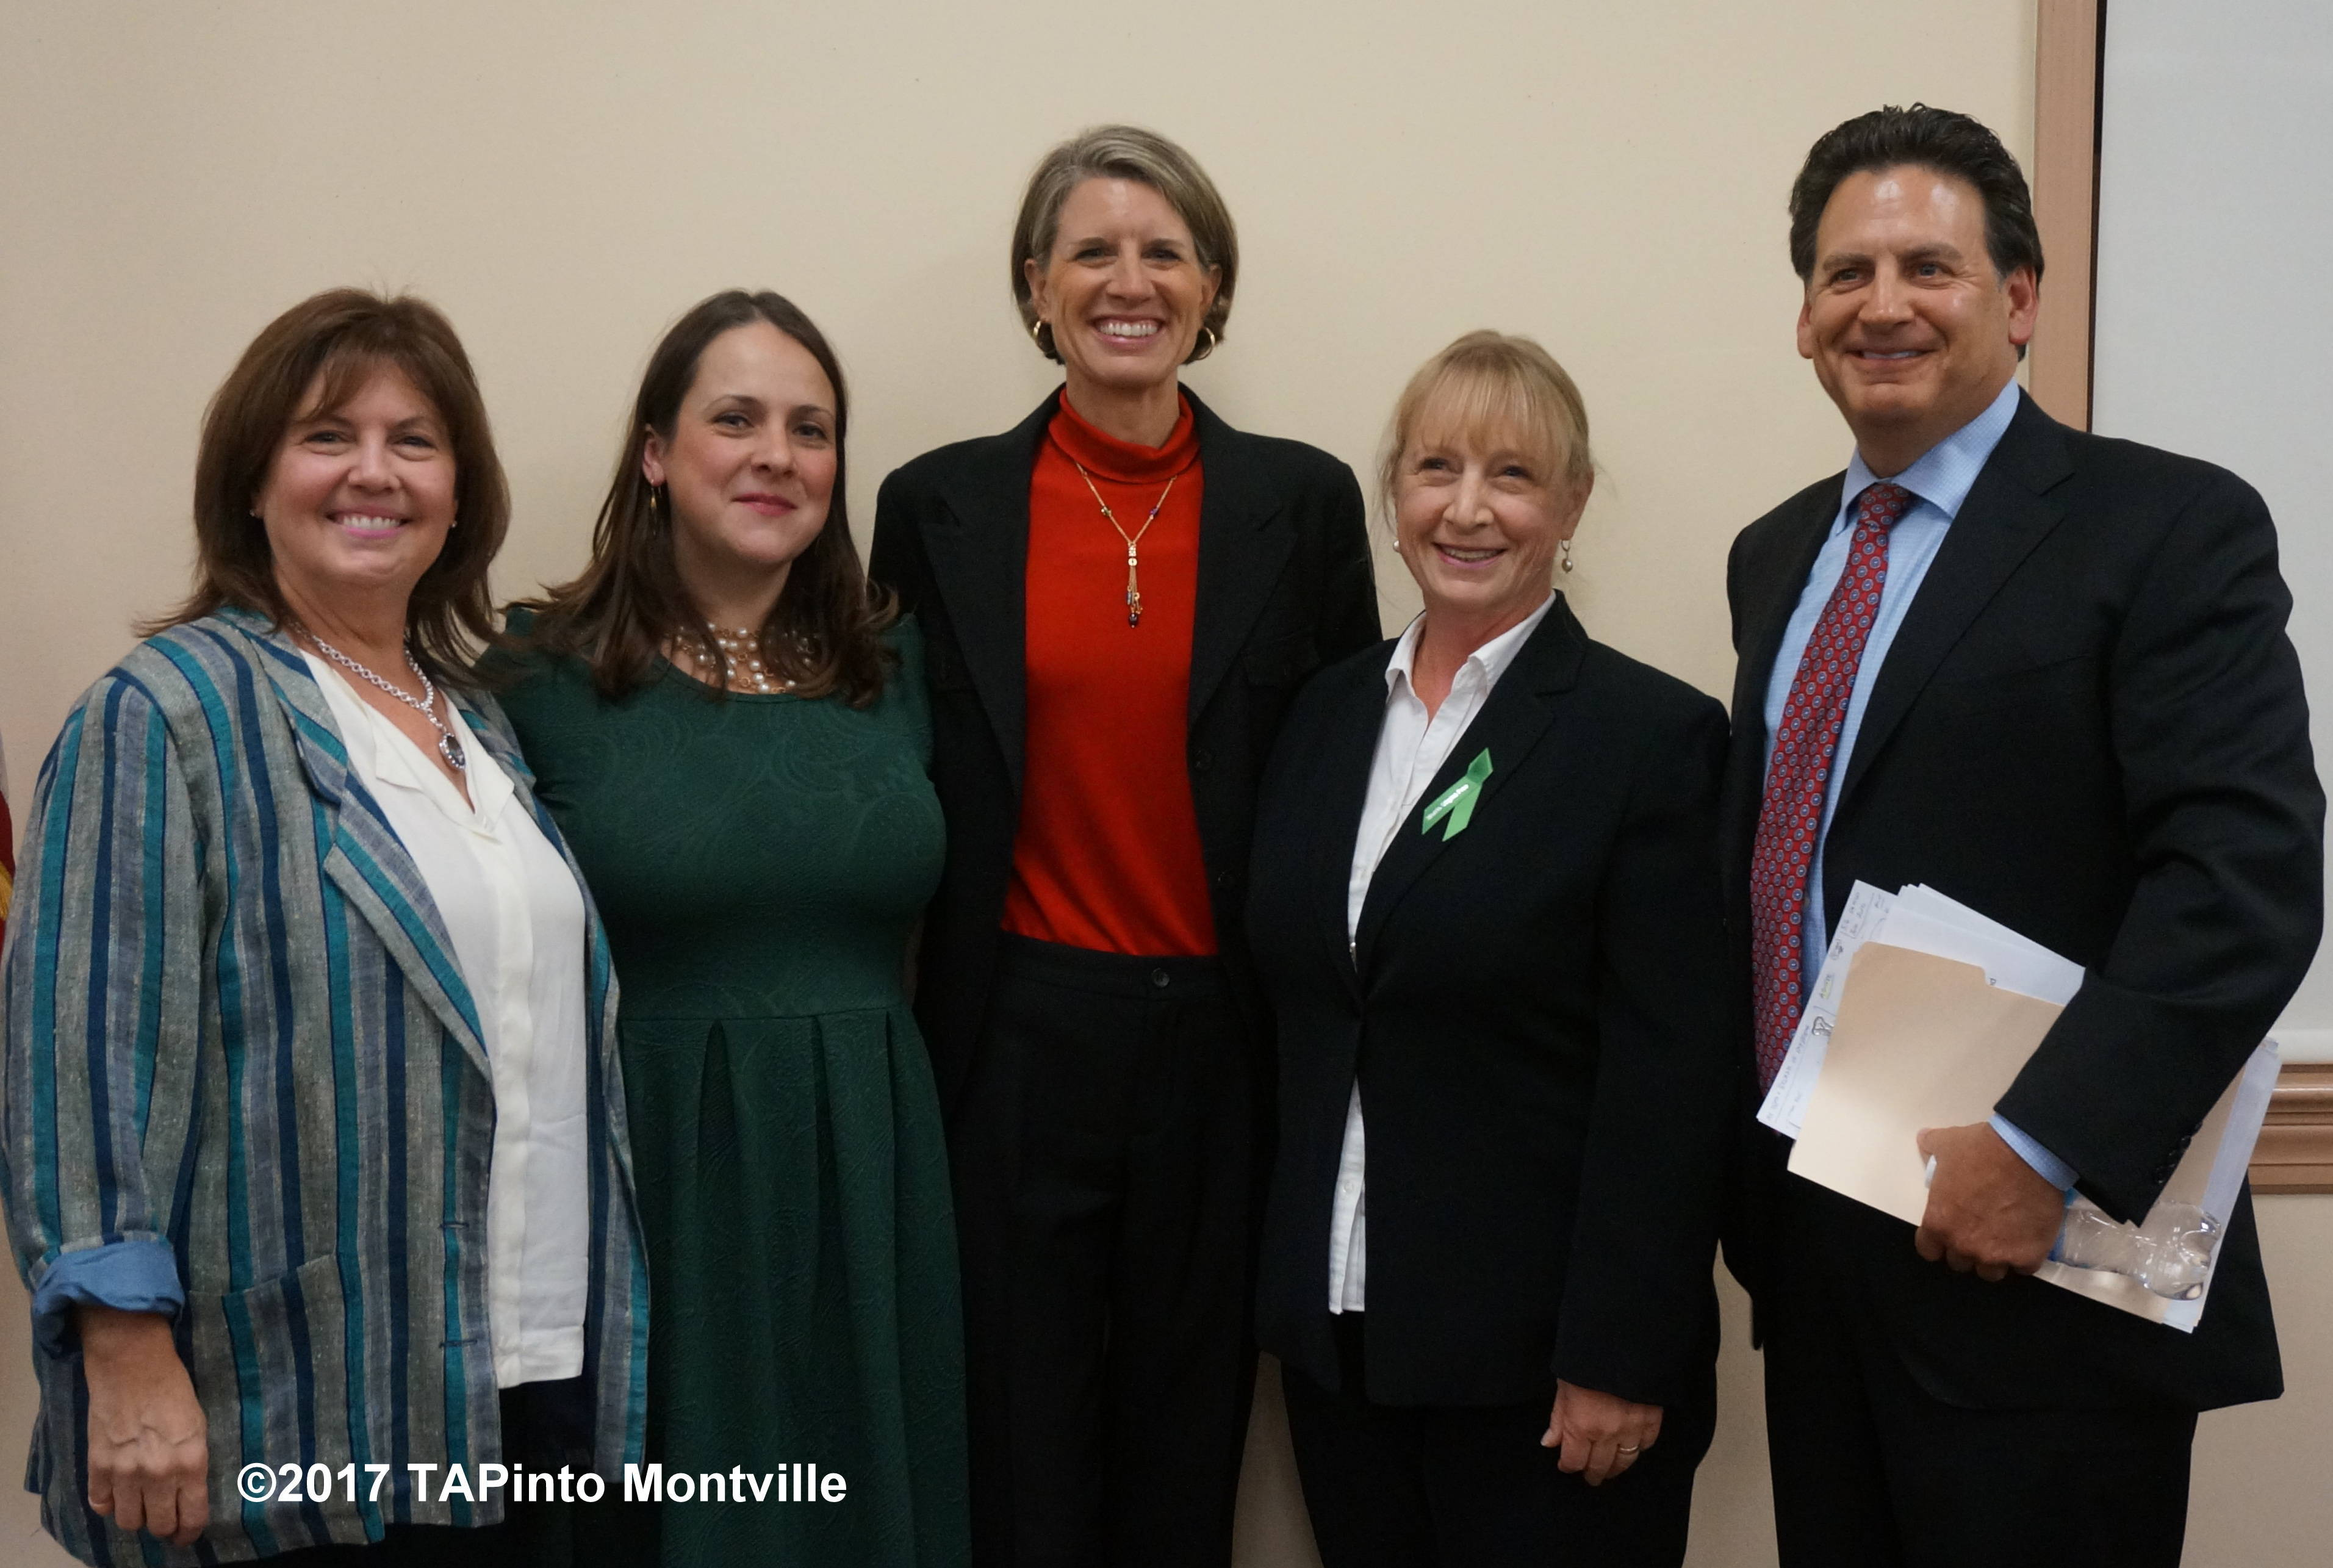 b1ebcb0390186c2097f1_a_Candidates_Lucy_Tullo__Emily_Ryzuk__moderator_Hope_White__and_candidates_June_Witty_and_Matt_Kayne__2017_TAPinto_Montville.JPG